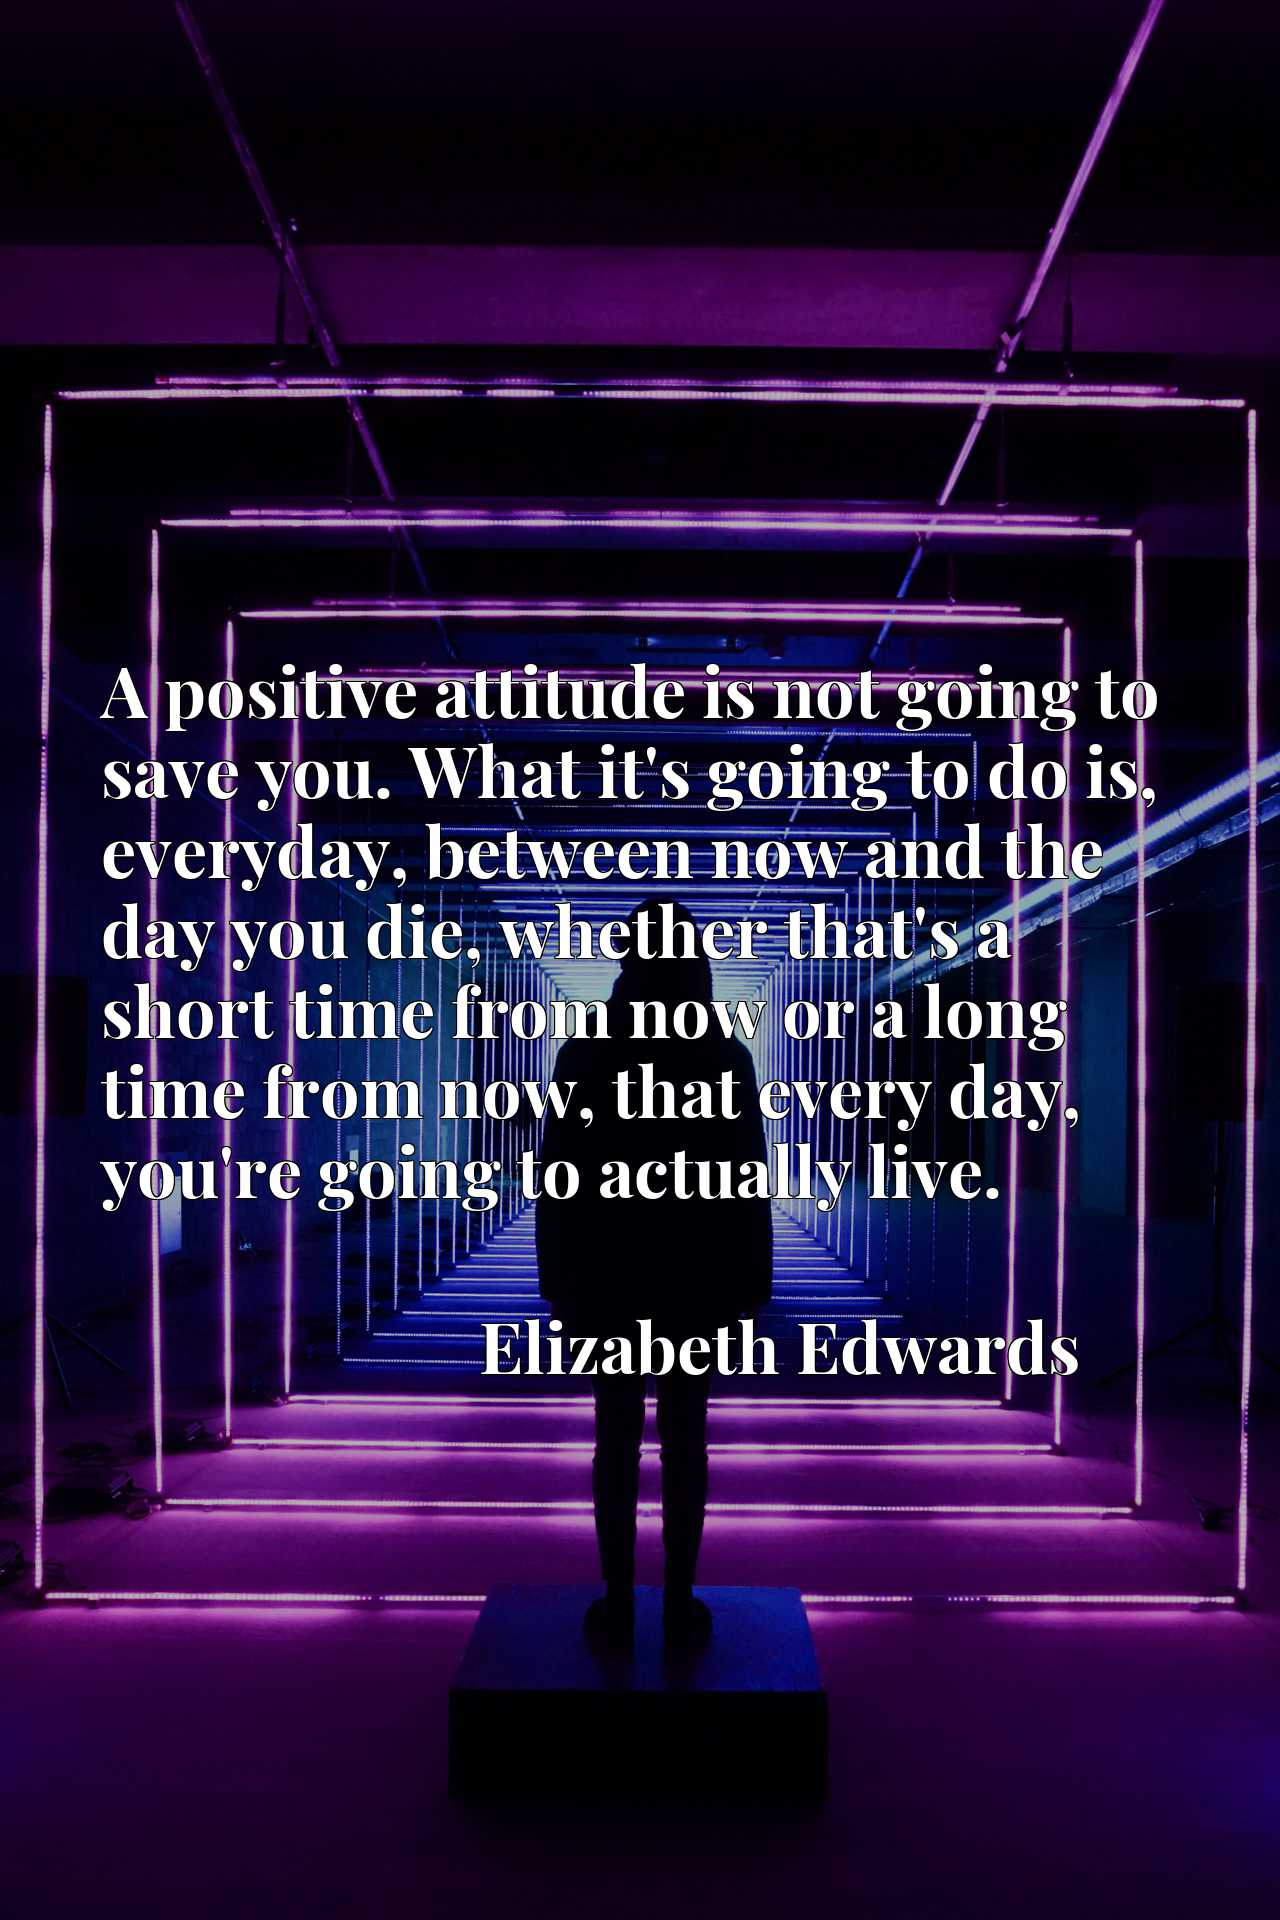 A positive attitude is not going to save you. What it's going to do is, everyday, between now and the day you die, whether that's a short time from now or a long time from now, that every day, you're going to actually live.